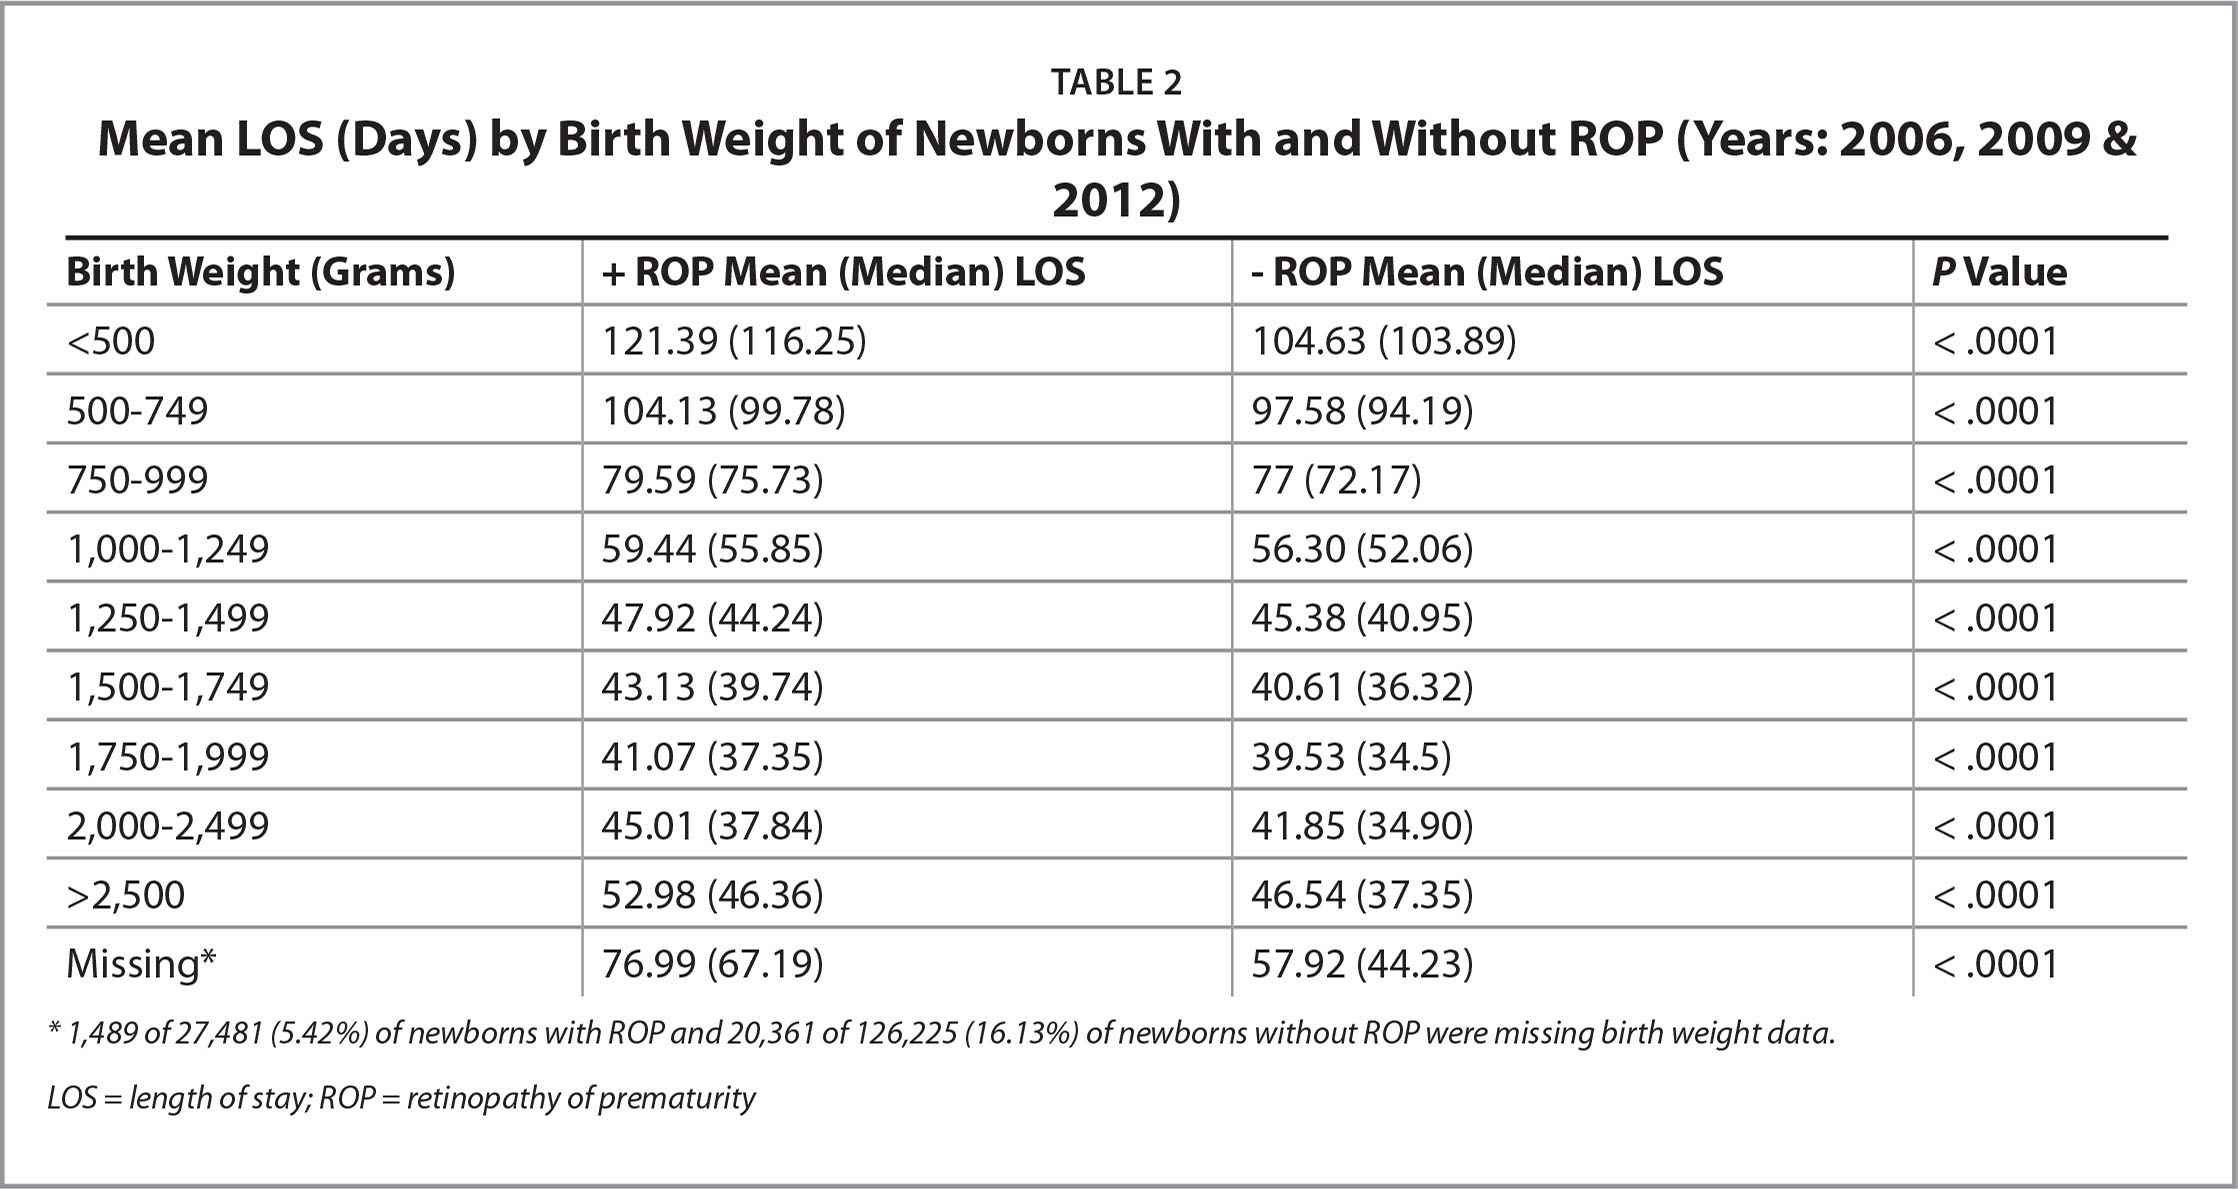 �A;Mean LOS (Days) by Birth Weight of Newborns With and Without ROP (Years: 2006, 2009 & 2012)�A;